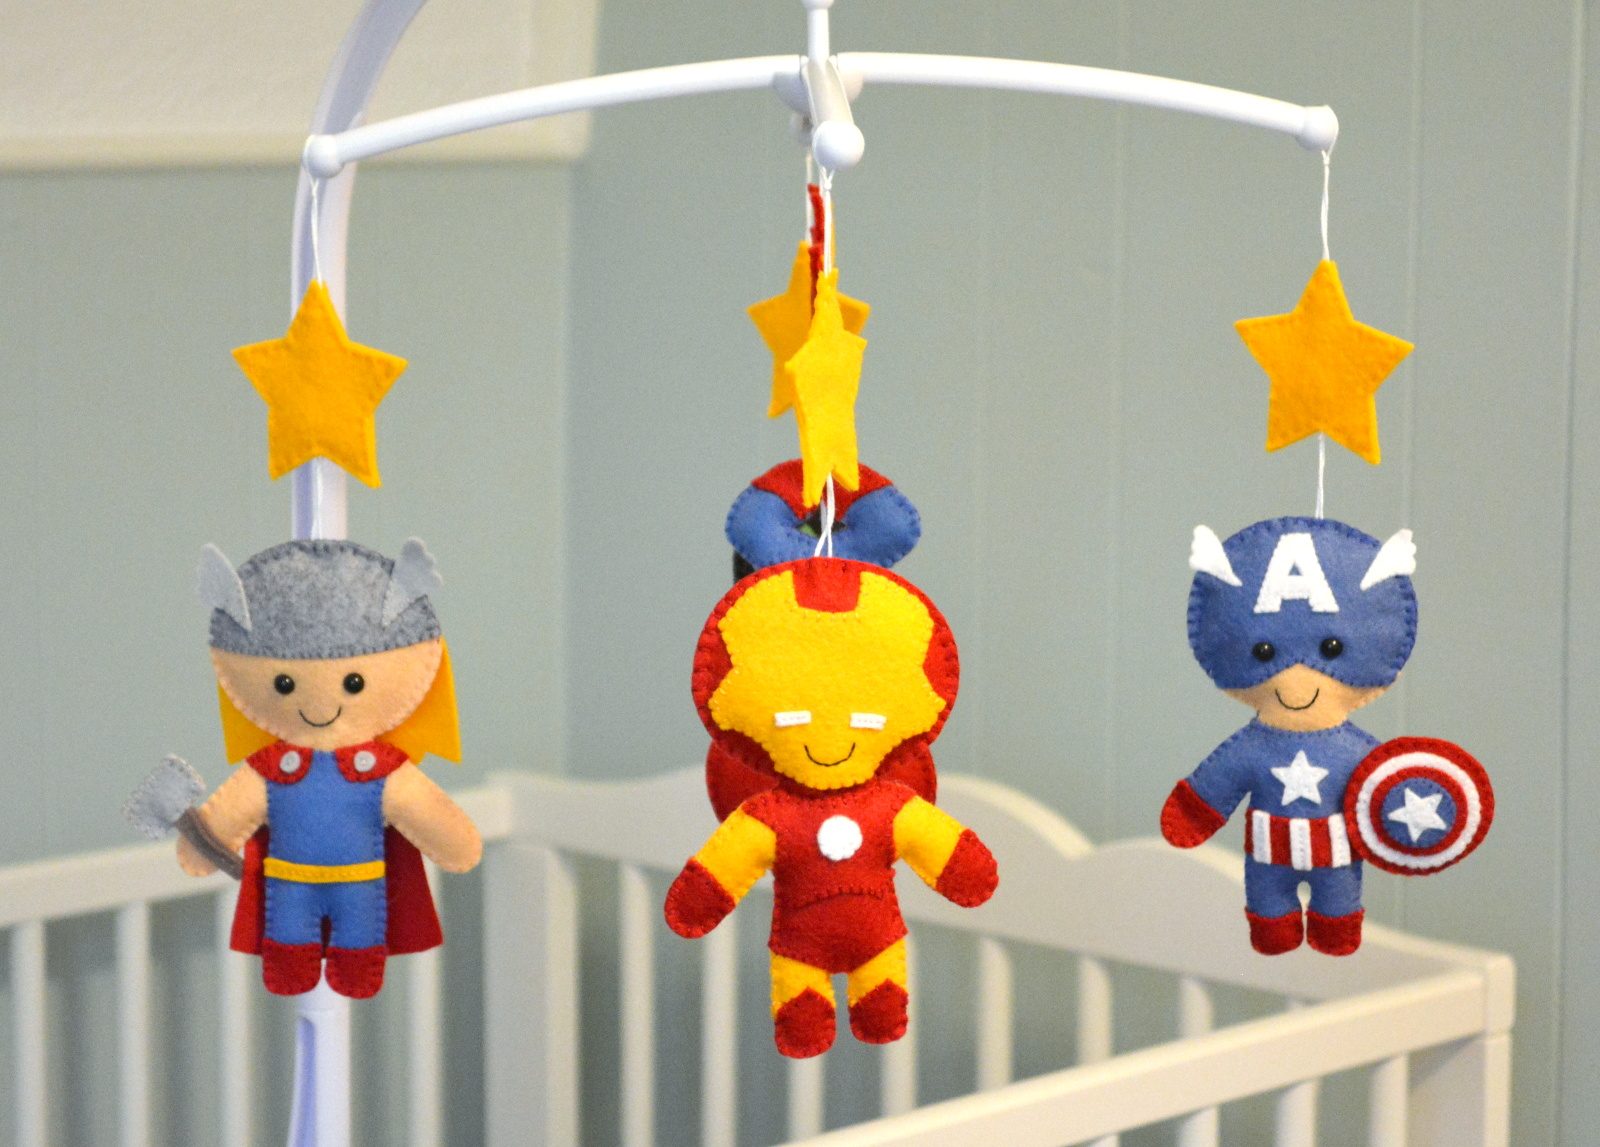 cozy birdhouse | avengers crib mobile